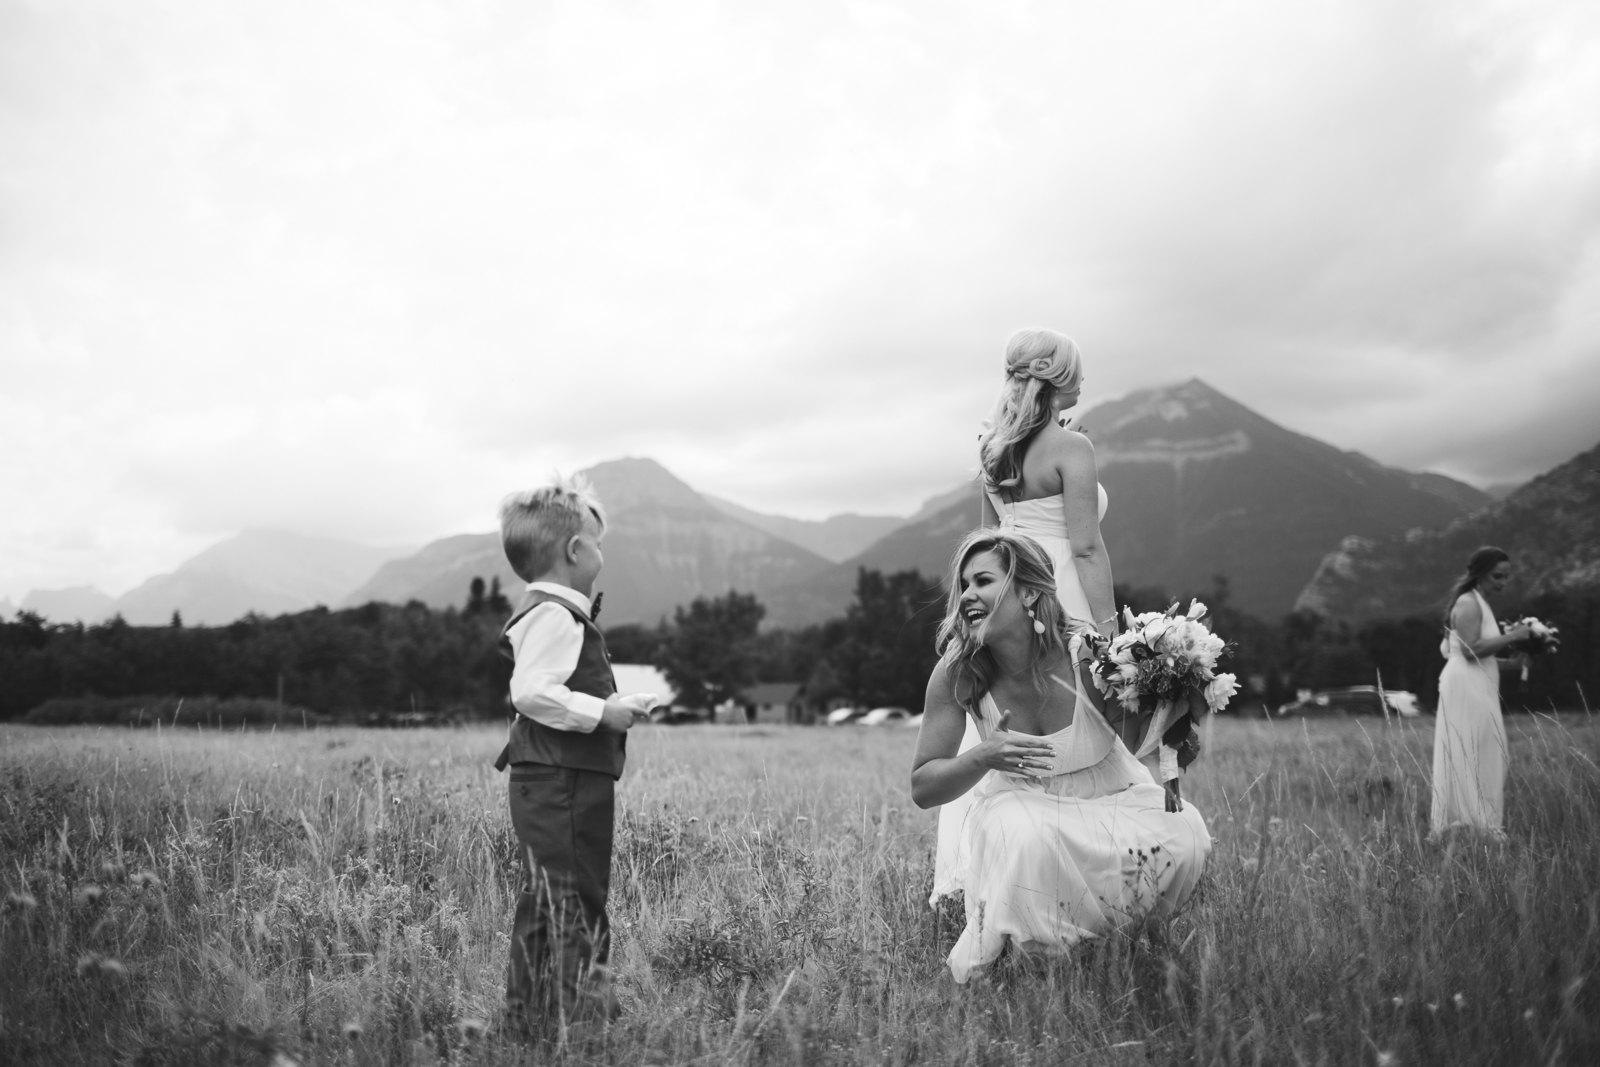 80Willow_and_Wolf_Photography_Katie_and_James_Waterton_Wedding_Blog72Willow_and_Wolf_Photography_Katie_and_James_Waterton_Wedding_Portraits_-ATP_5473